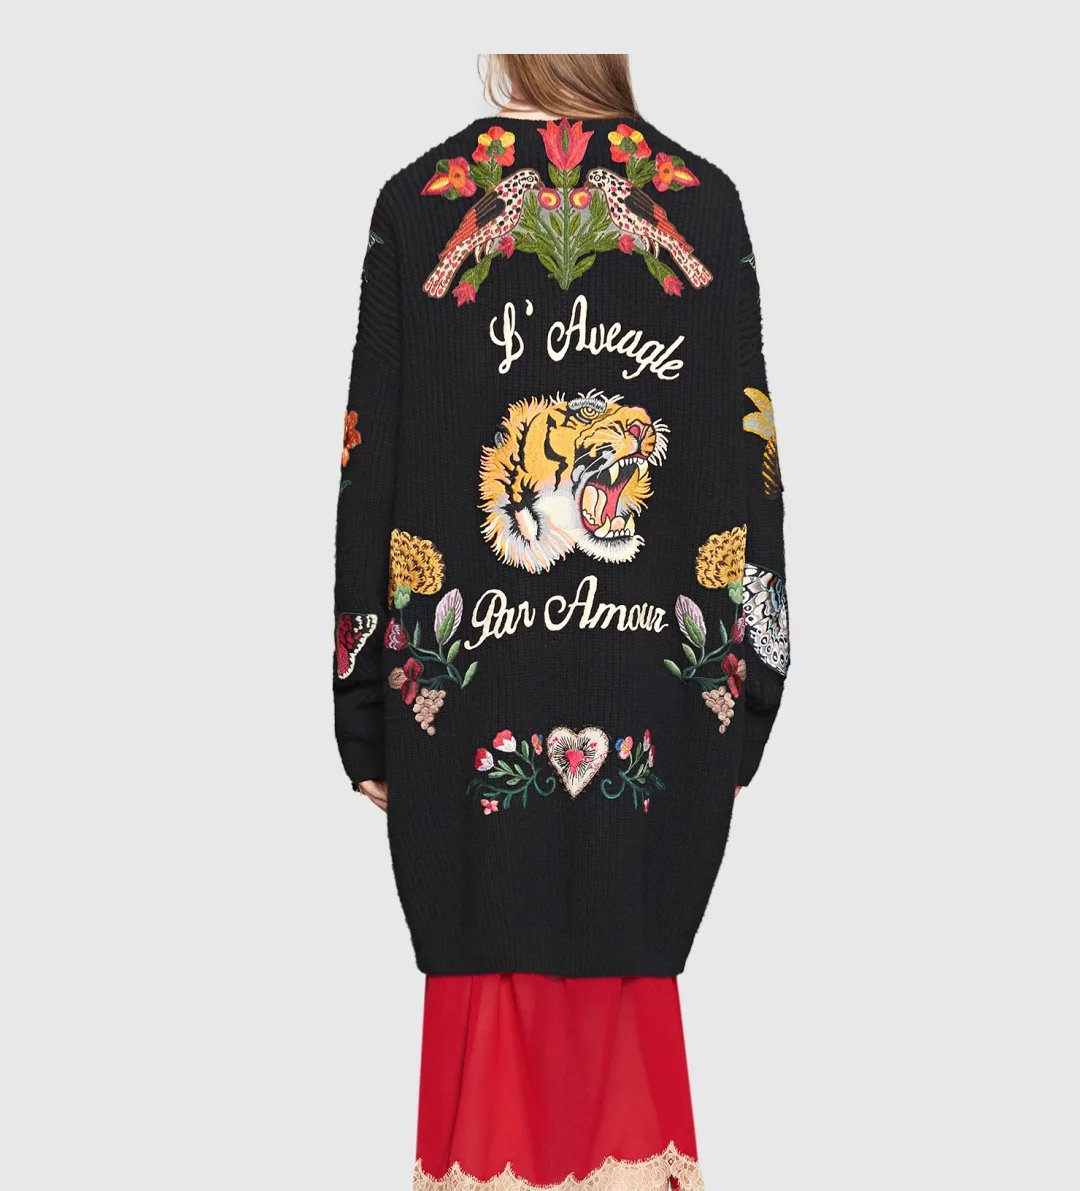 Sweater Jacket Women Cardigans Vintage Tiger Embroidery Knitted Basic Coats Big Size Long Casual Thicken Outwear Blouson Femme